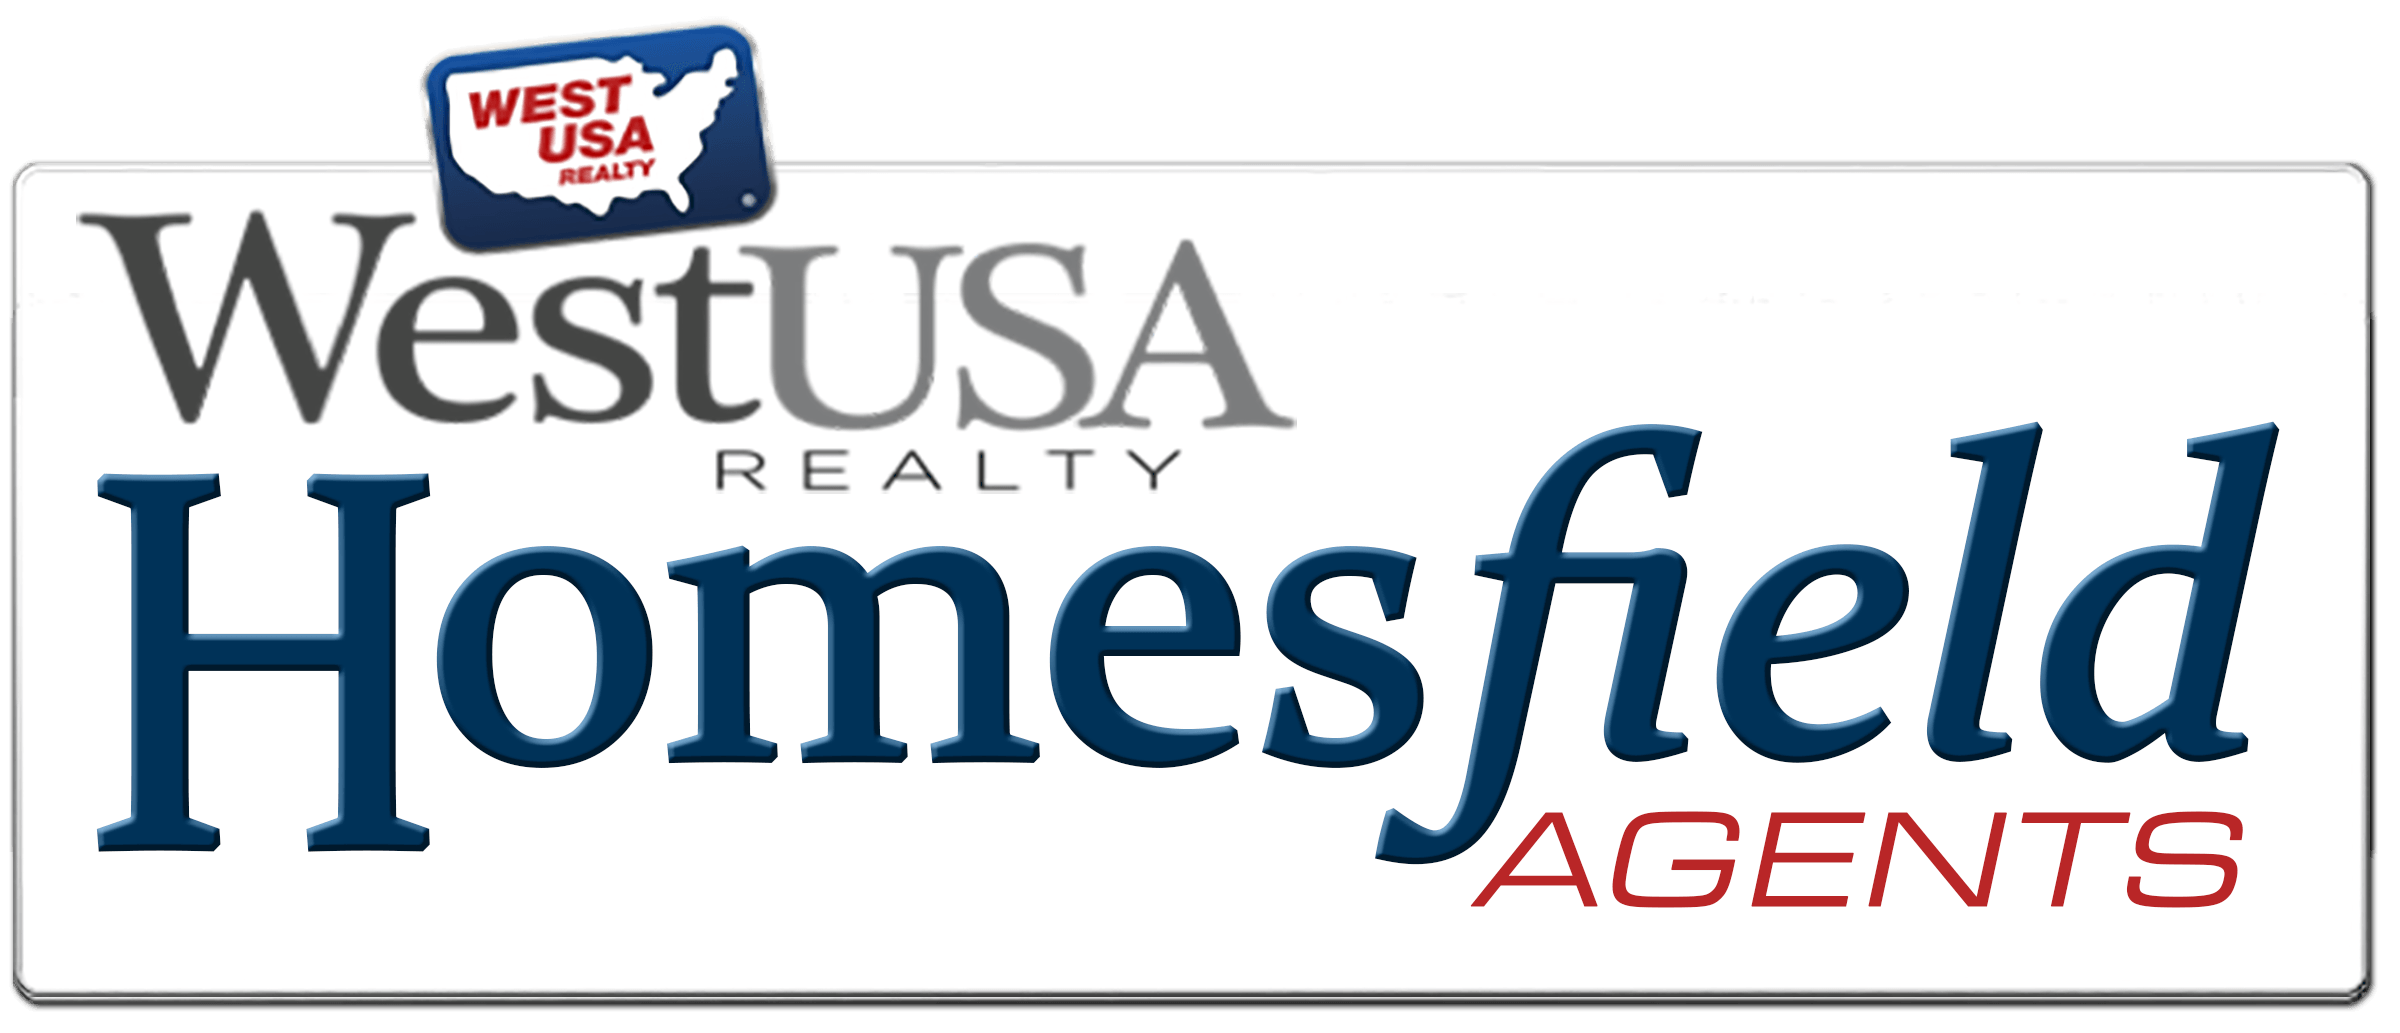 Homesfield Agents of West USA Realty in Phoenix. Northgate Realtor